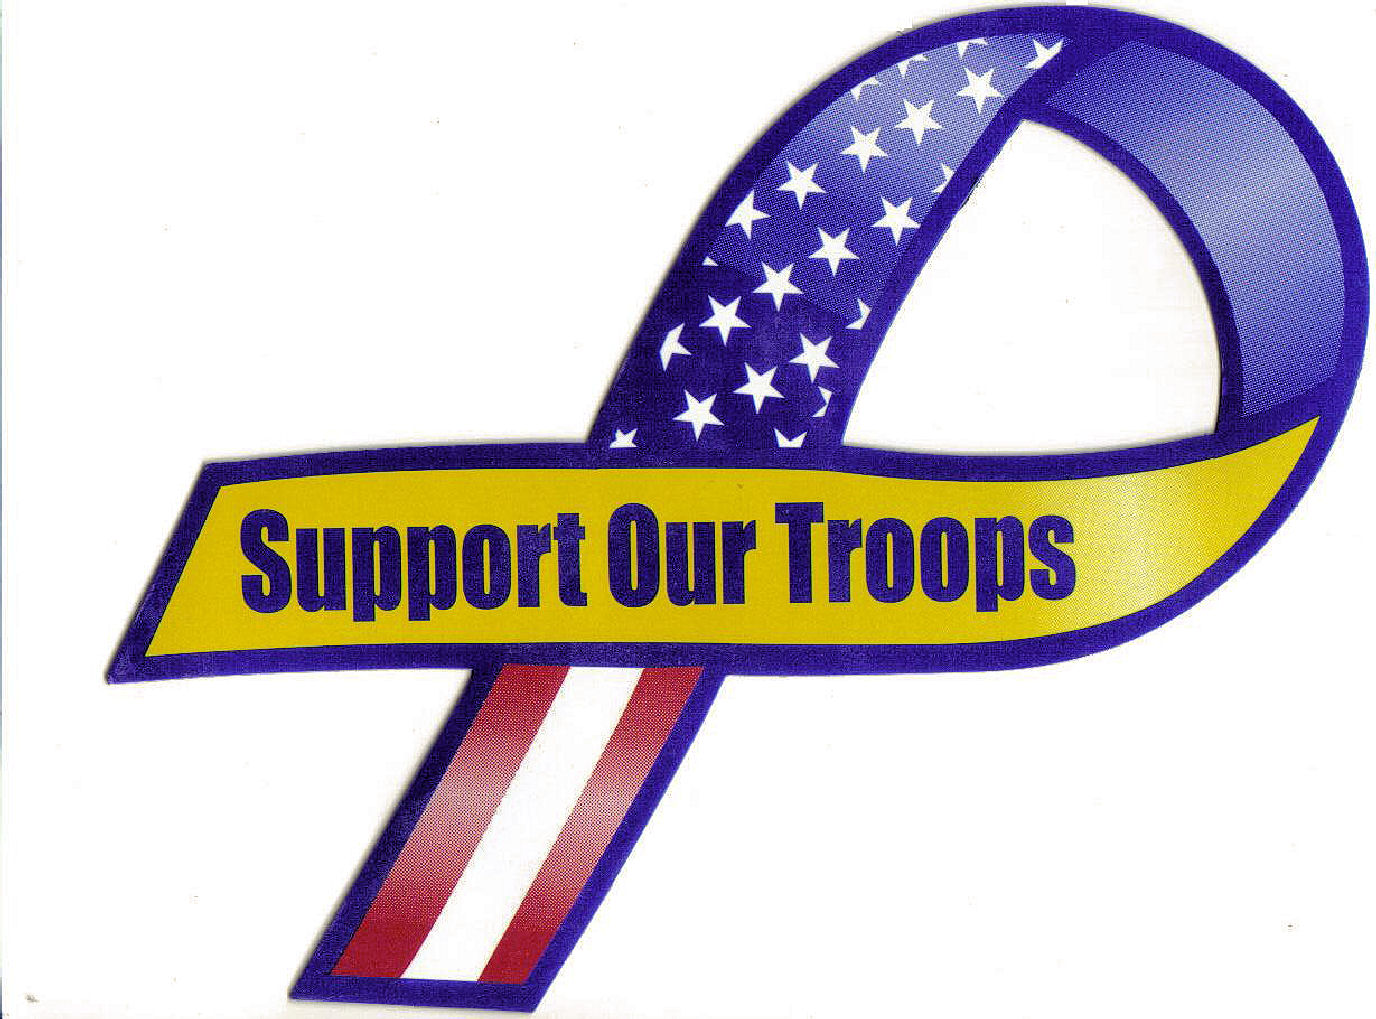 http://www.sarahengel.us/wp-content/uploads/2013/05/support-our-troops.jpeg